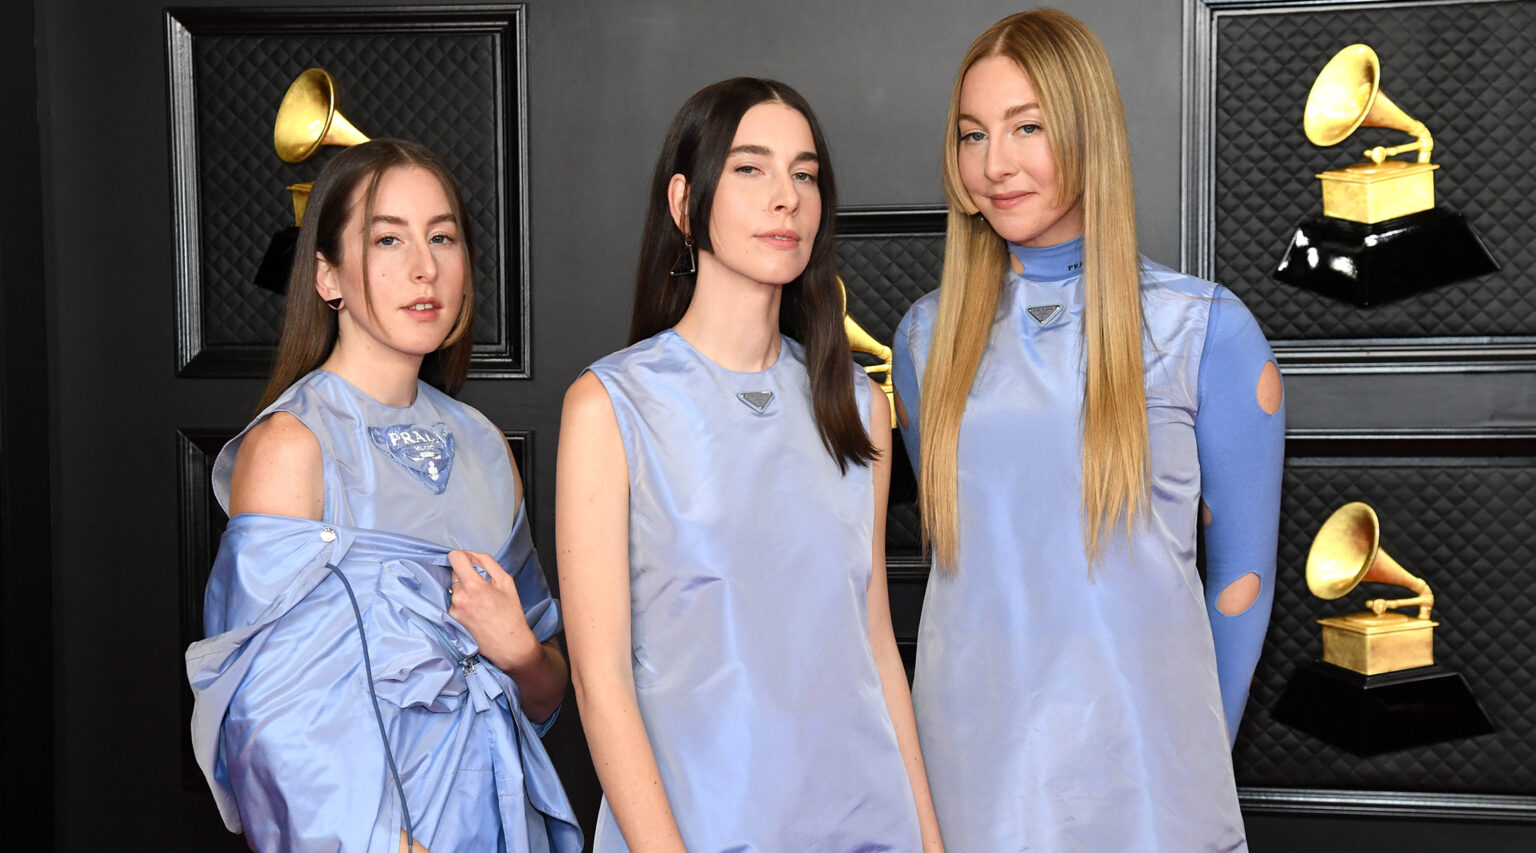 Alana Haim, Danielle Haim and Este Haim of the sister act Haim attend the 63rd Annual Grammy Awards, March 14, 2021. (Photo/JTA-Kevin Mazur-Getty Images for The Recording Academy)